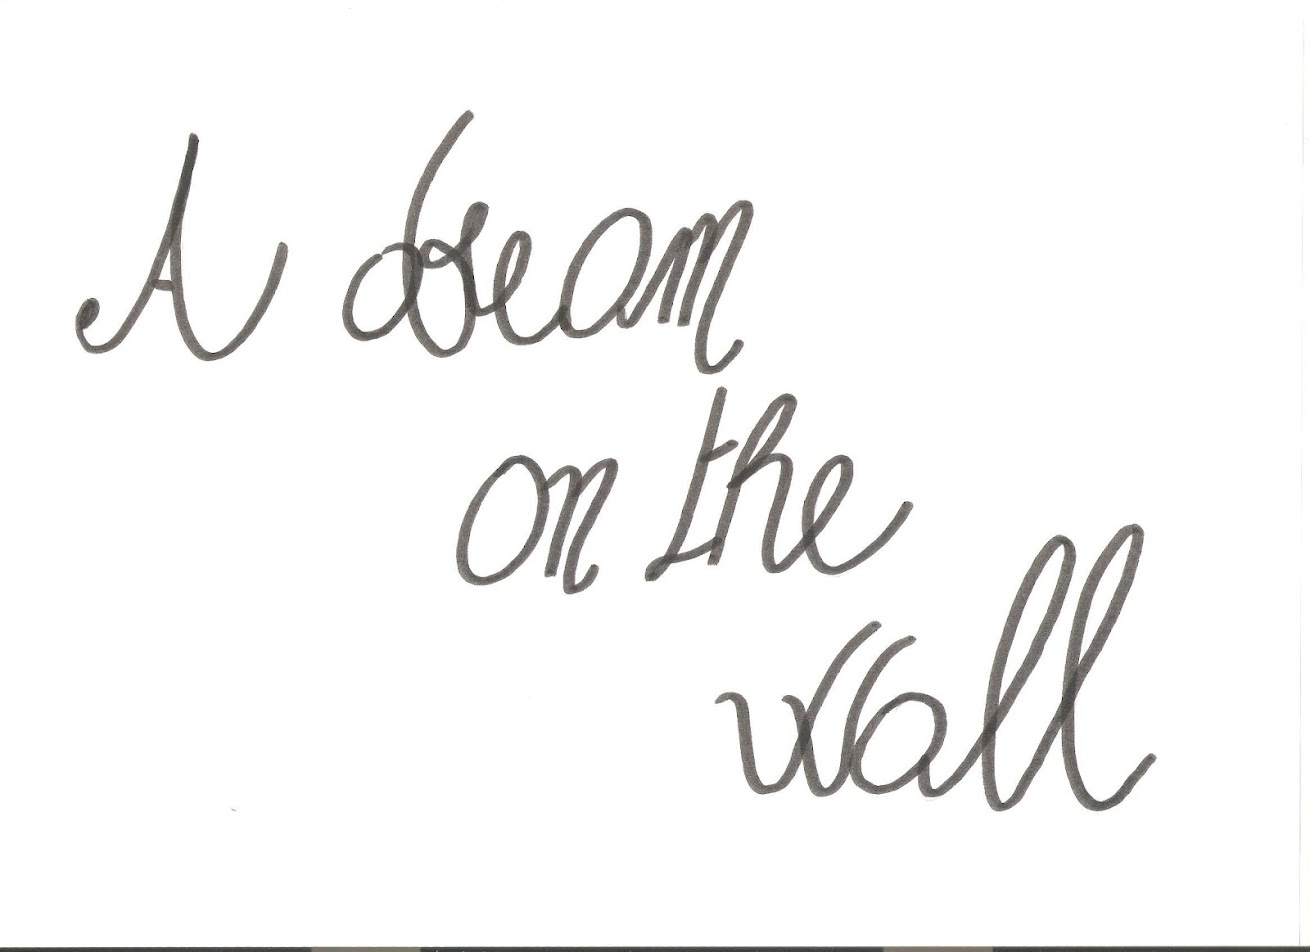 a dream on the wall